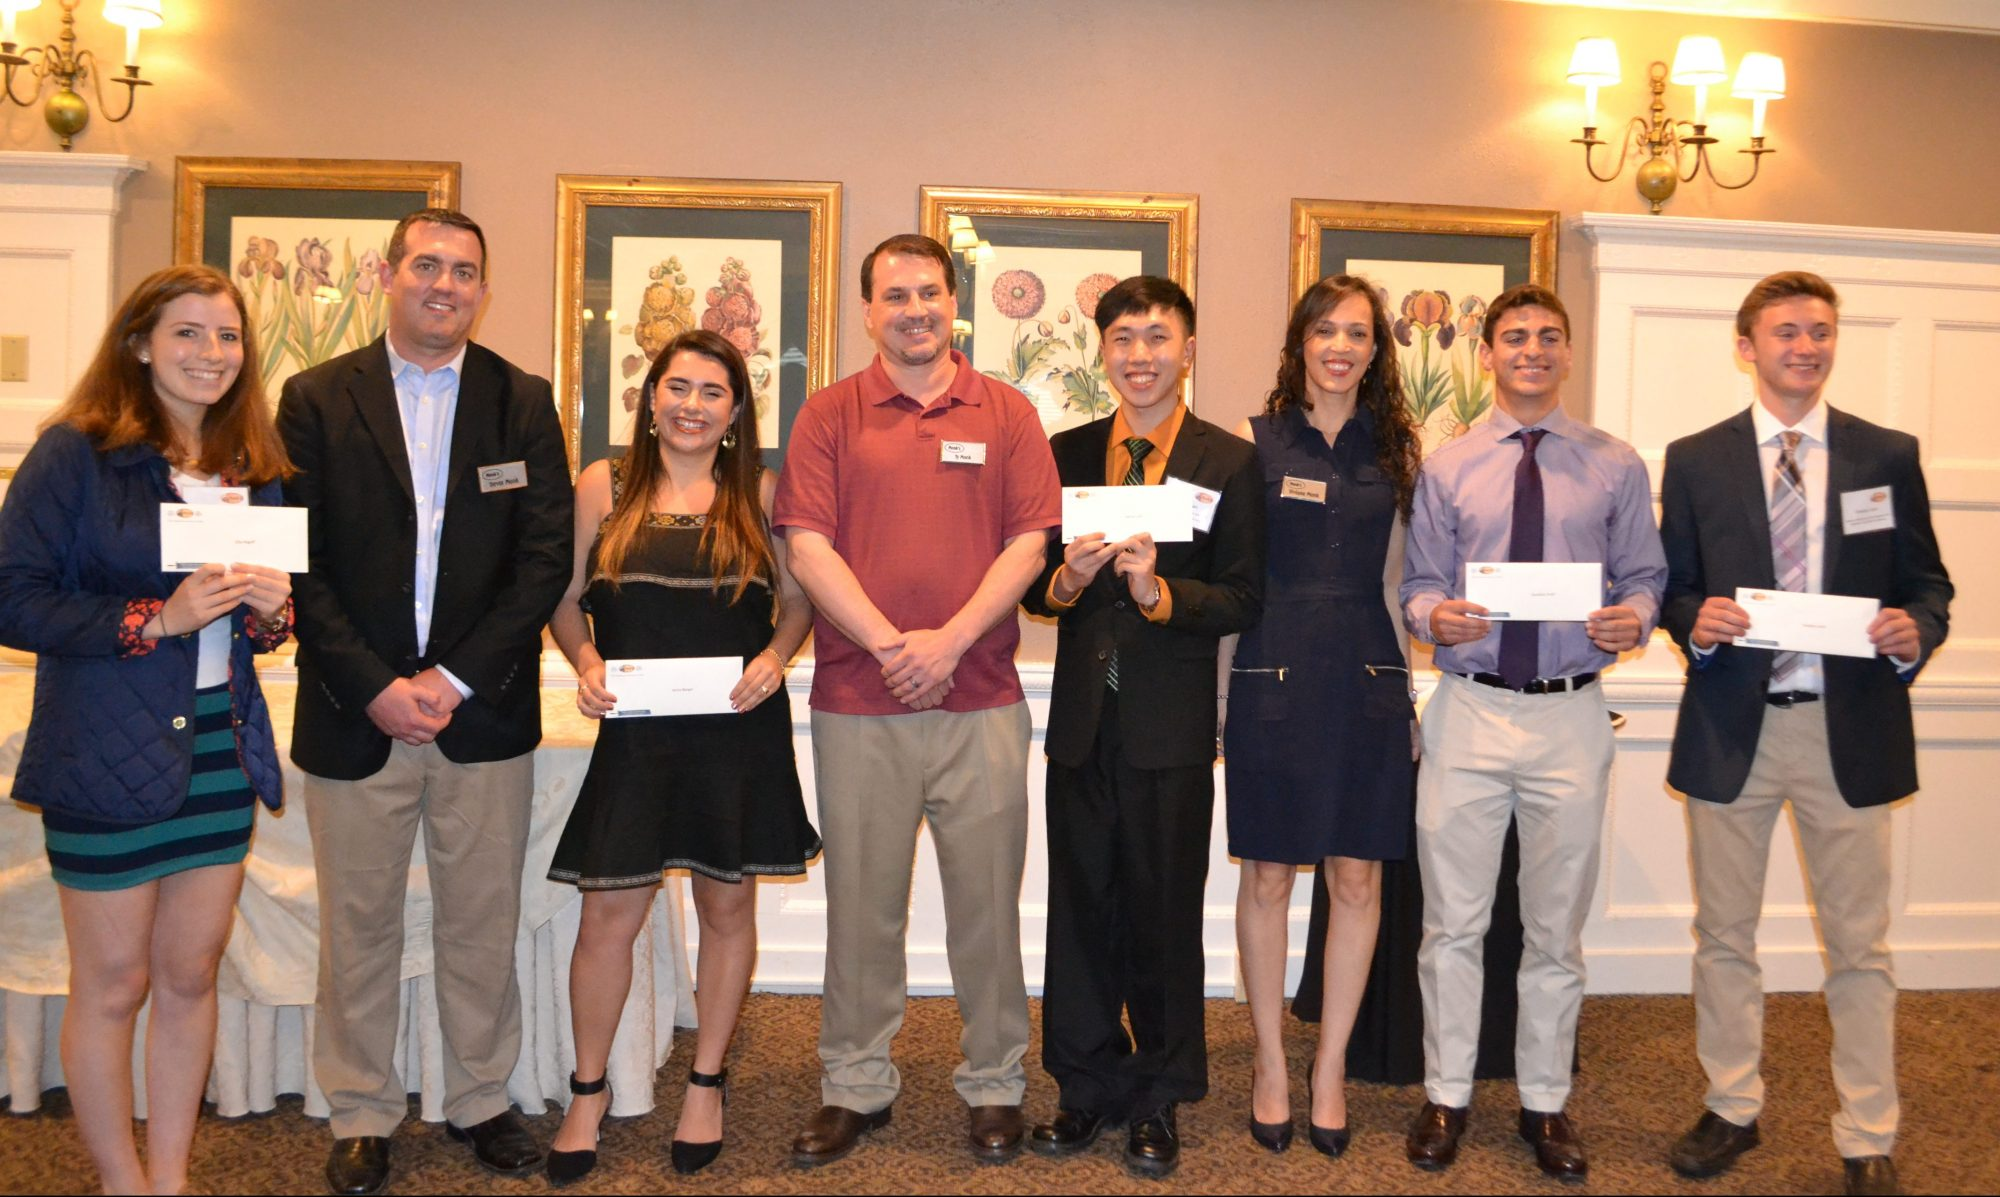 Monk's Service Scholarship Winners 2017. From left: Ellie Rogoff, Trevor Monk, Jenna Berger, Ty Monk, Adrian Lam, Viviane Monk, Jonathan Kraft and Brad Levin.